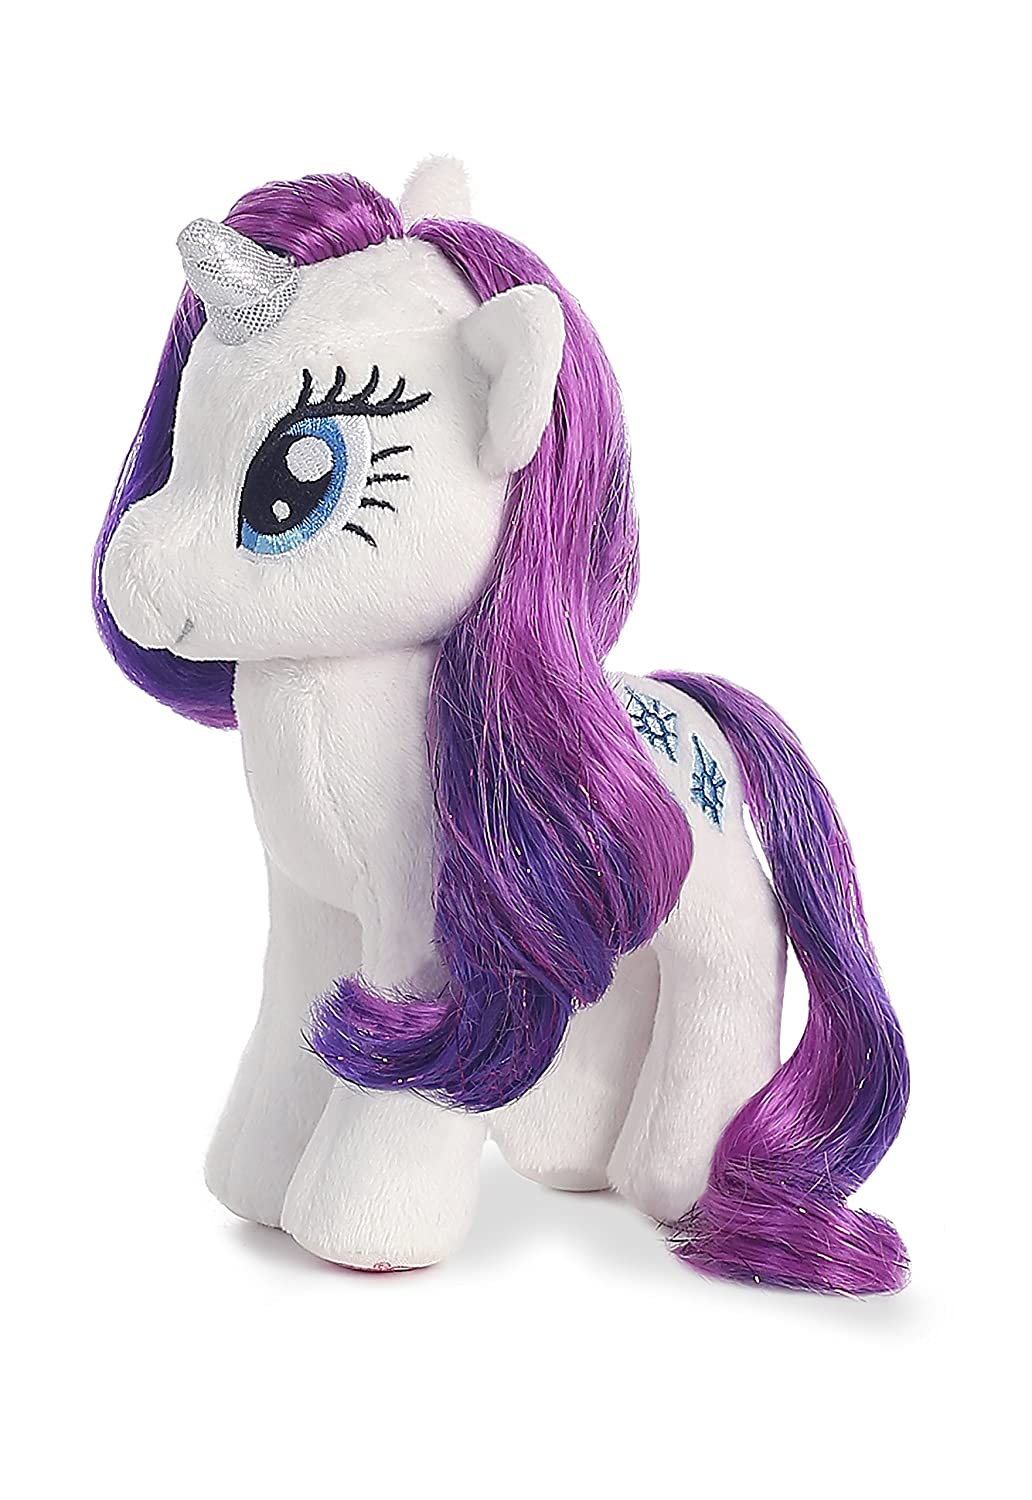 My Little Pony Friendship Magic Rarity plush toys